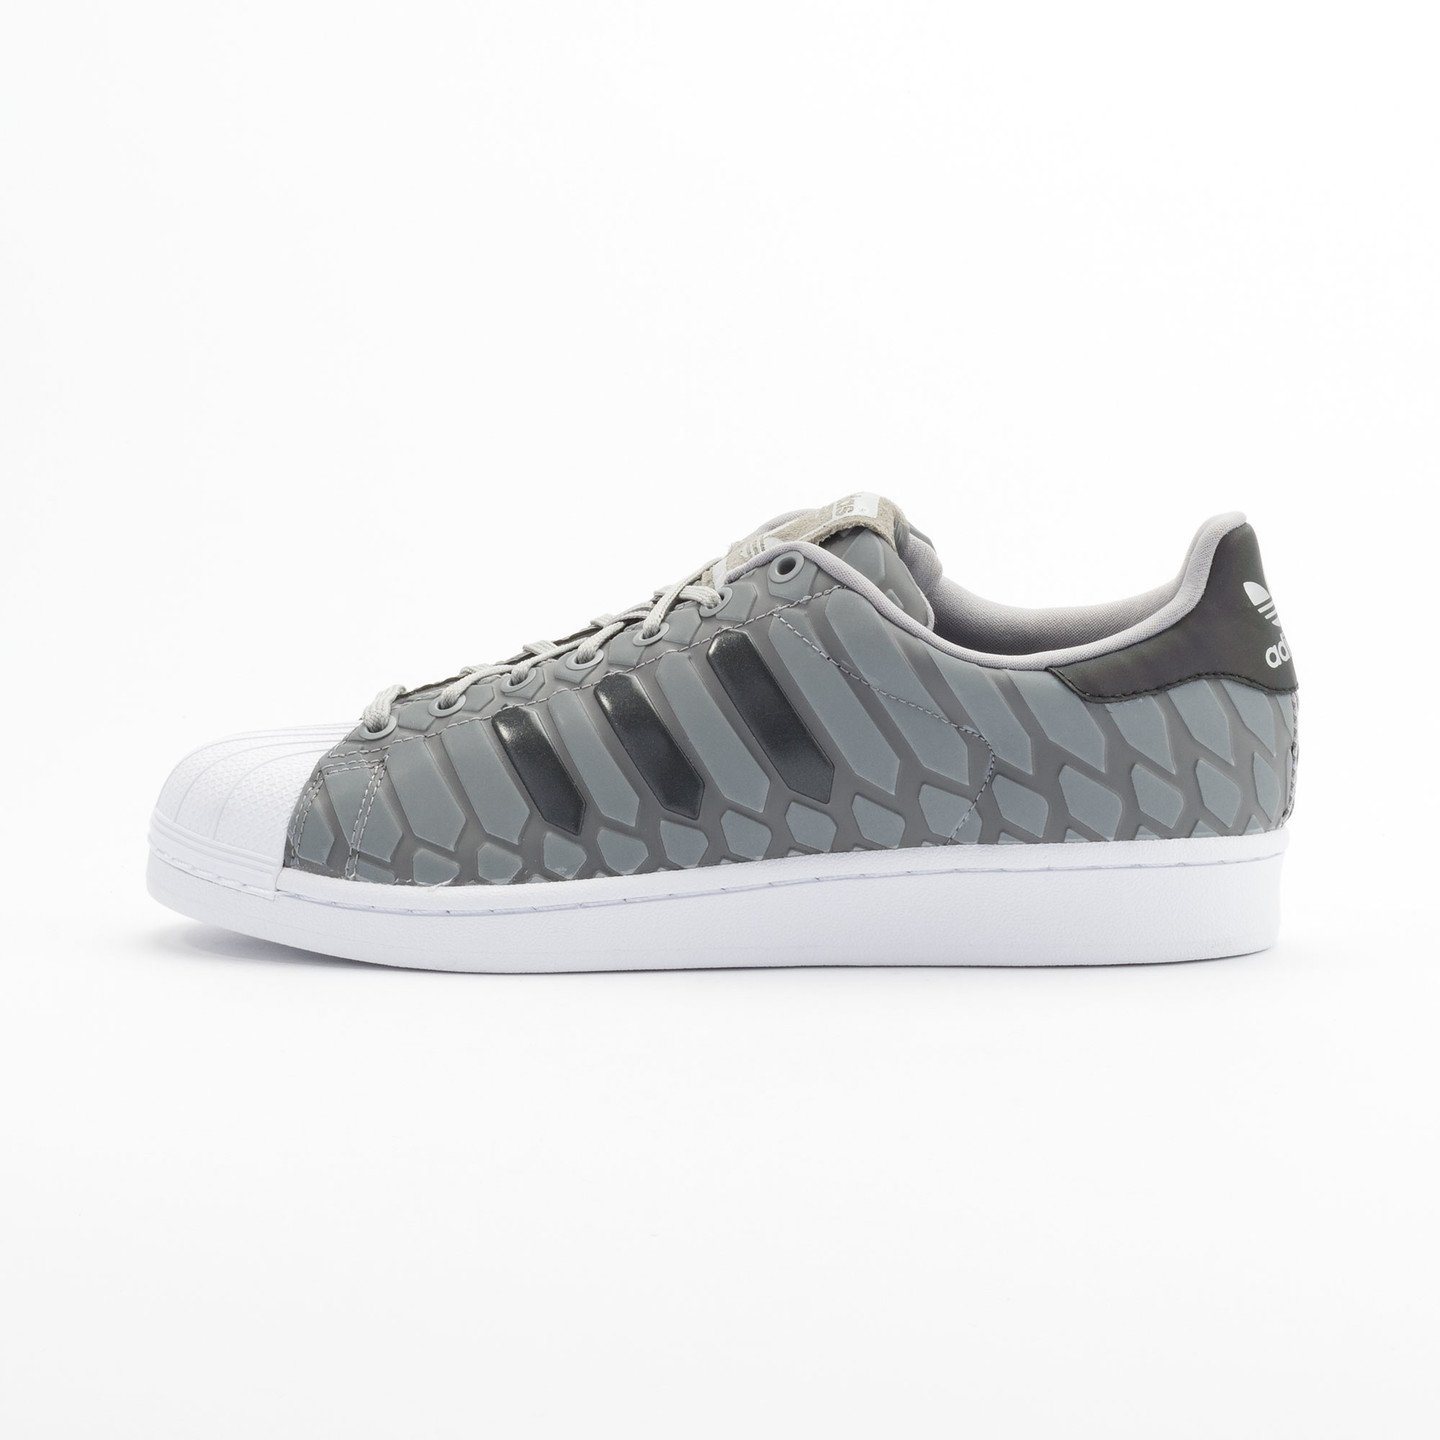 Adidas Superstar Xeno Pack Ltonix / Supcol / Ftwwht D69367-36.66